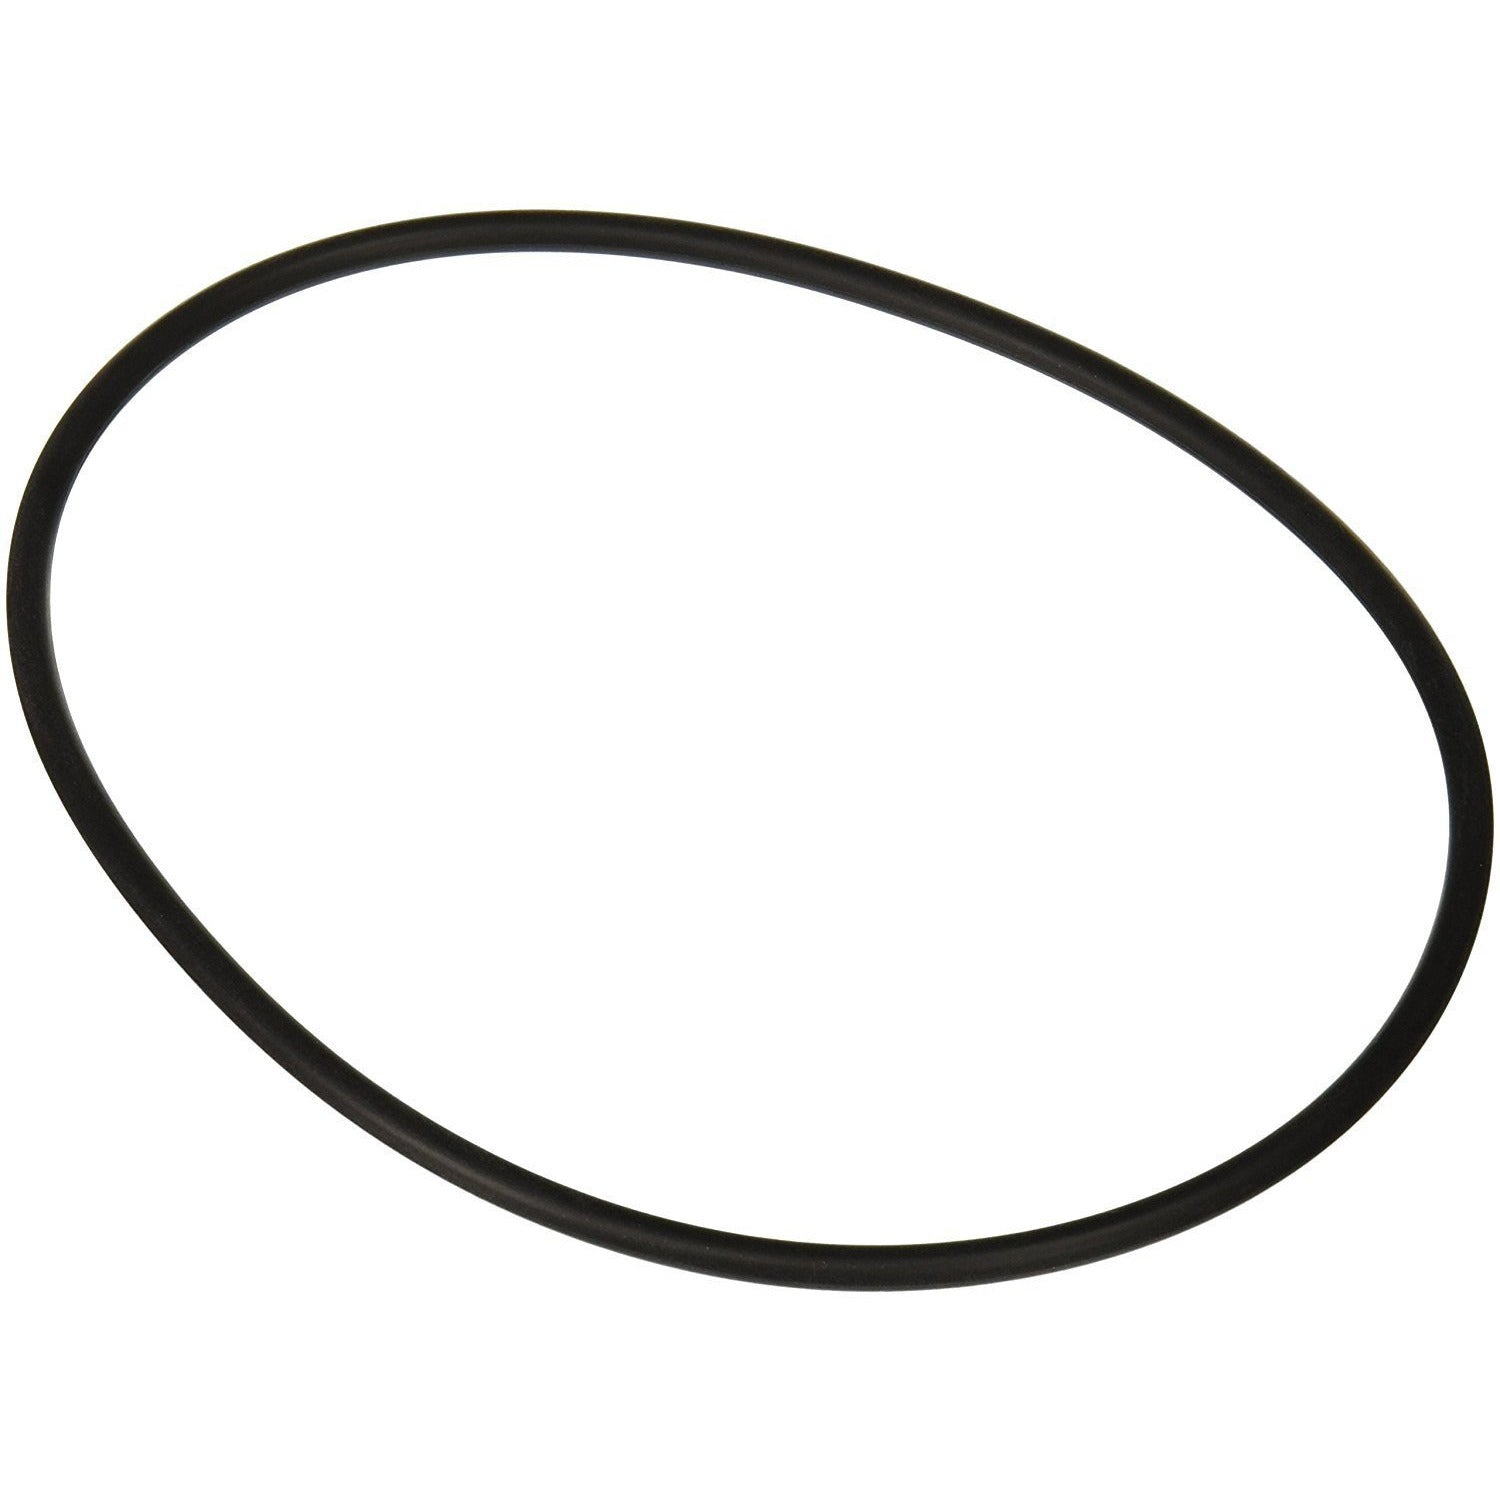 Replacement O-ring for Hayward SX200Z6